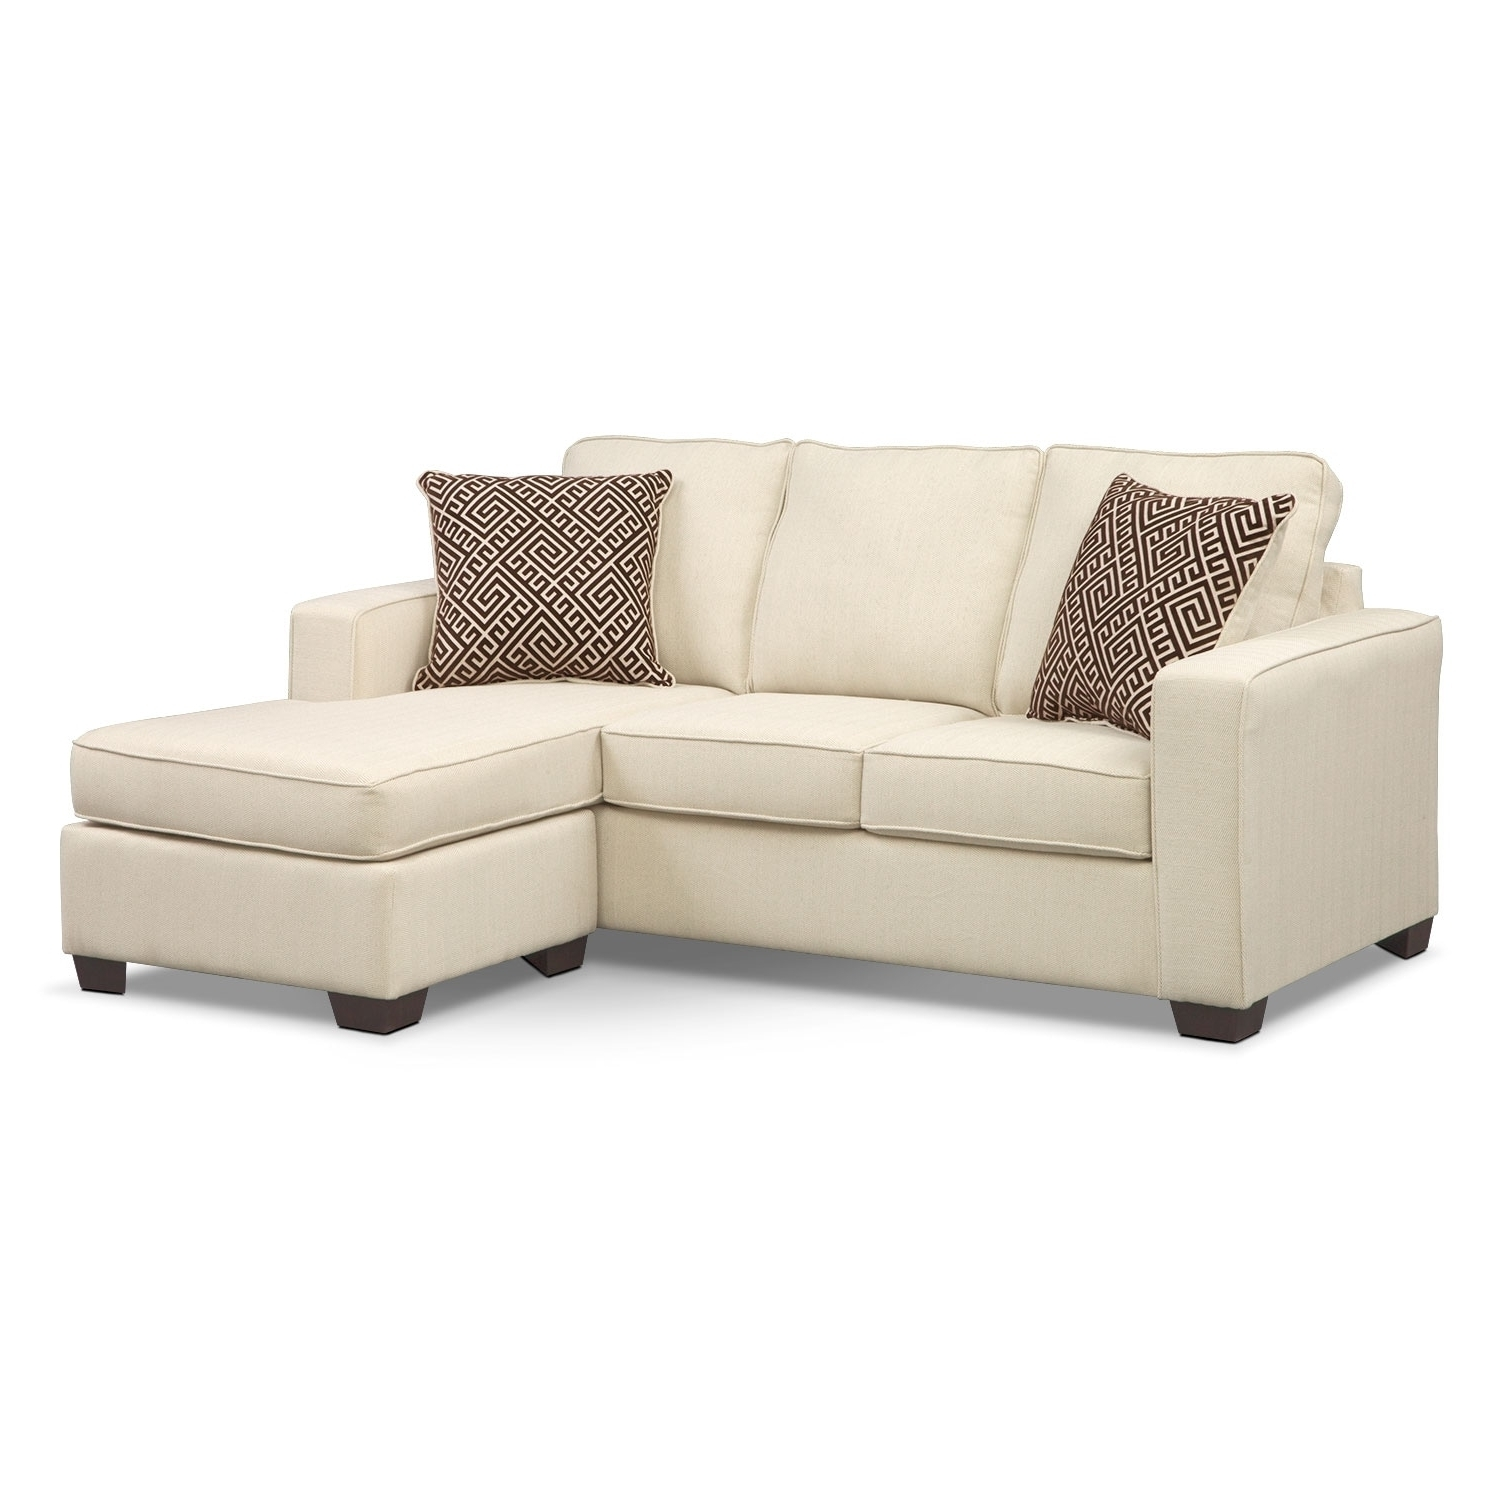 Preferred Sterling Innerspring Sleeper Sofa With Chaise – Beige (View 10 of 15)